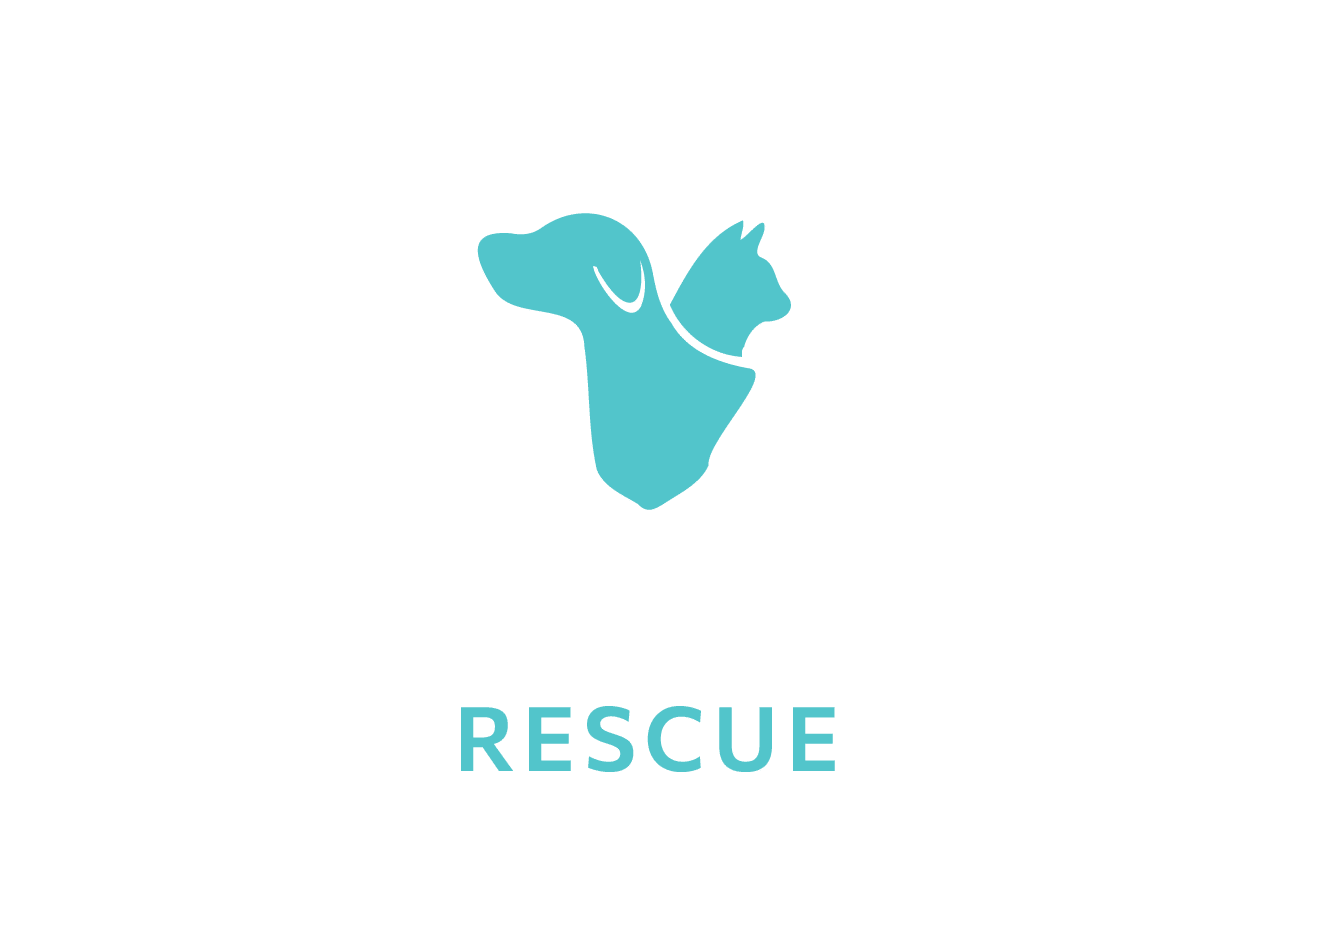 Helping Hands Rescue